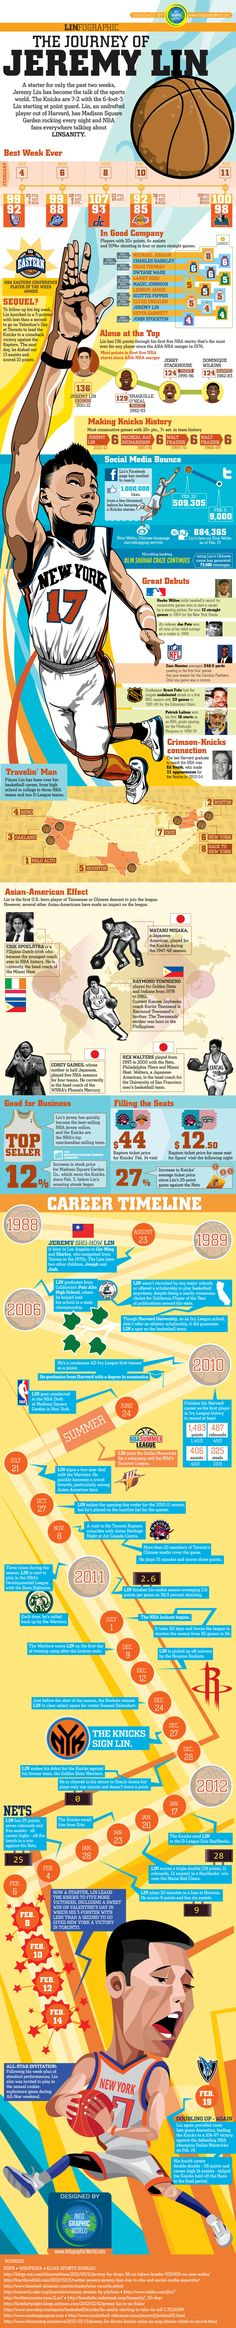 Linfographic: The Journey of Jeremy Lin